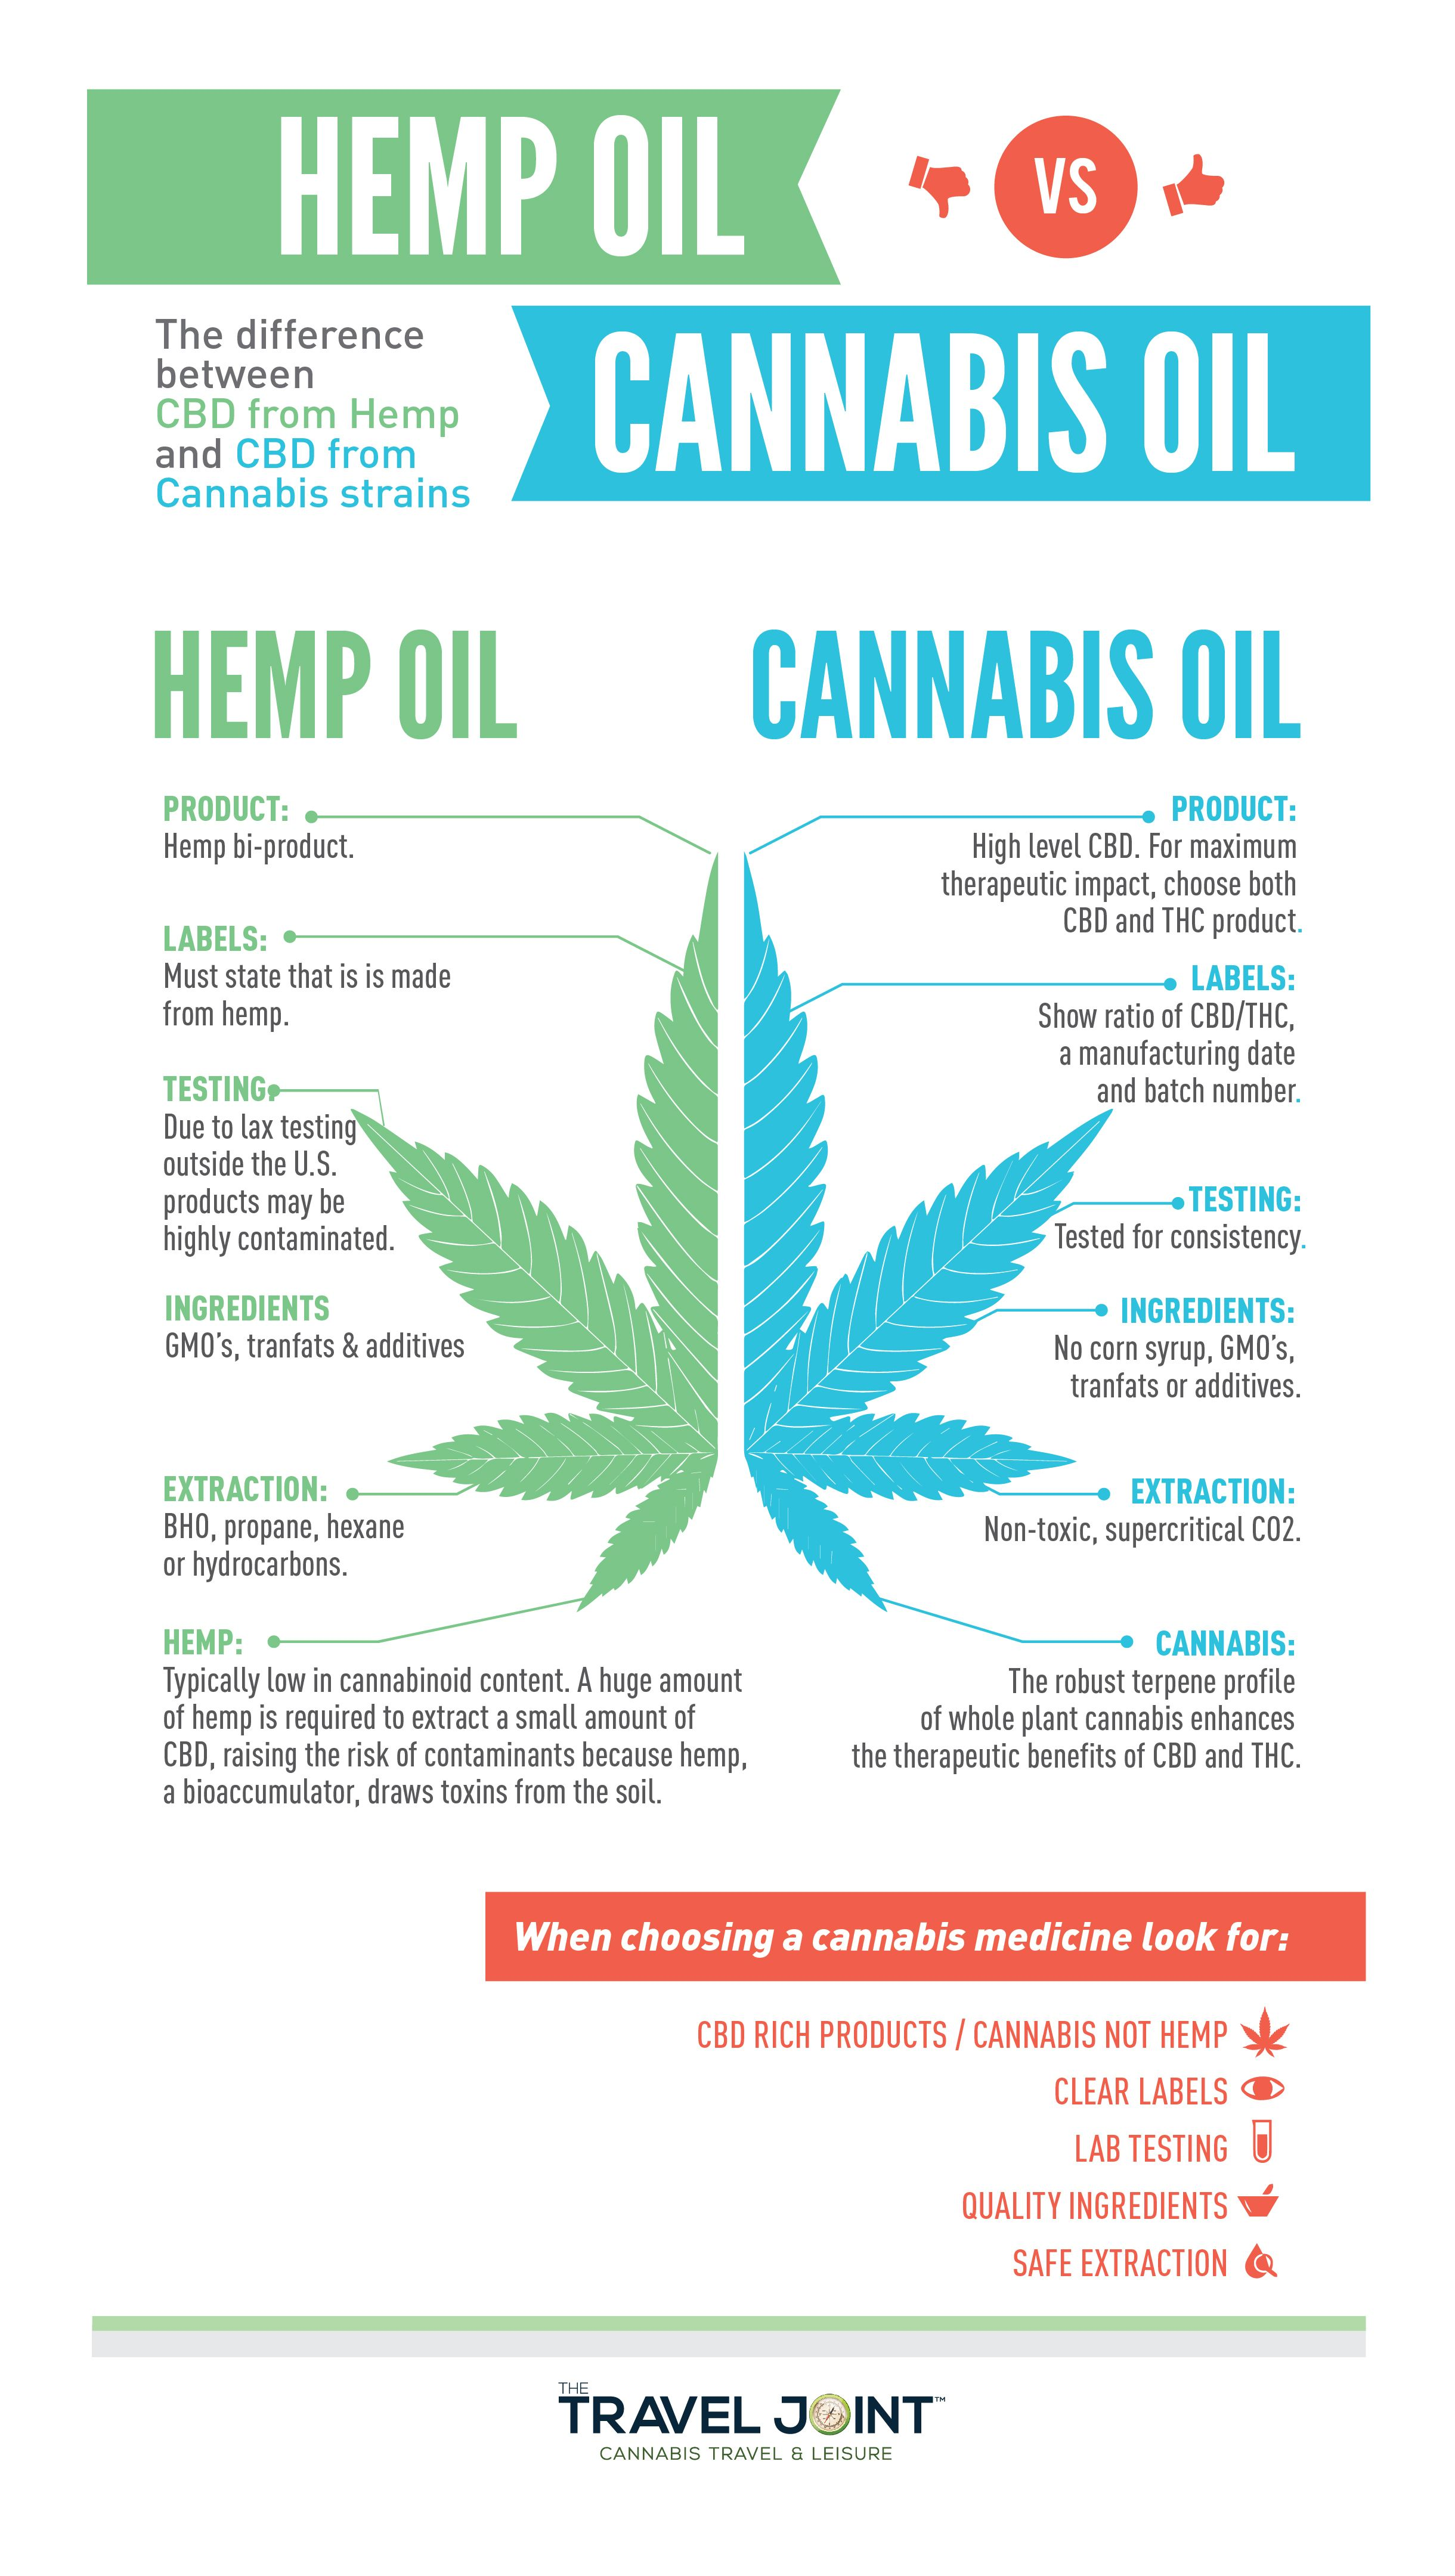 There is a lot of confusion between the benefits of Hemp Oil vs. Whole  Plant Cannabis Oil when you are looking for the medicinal benefits.